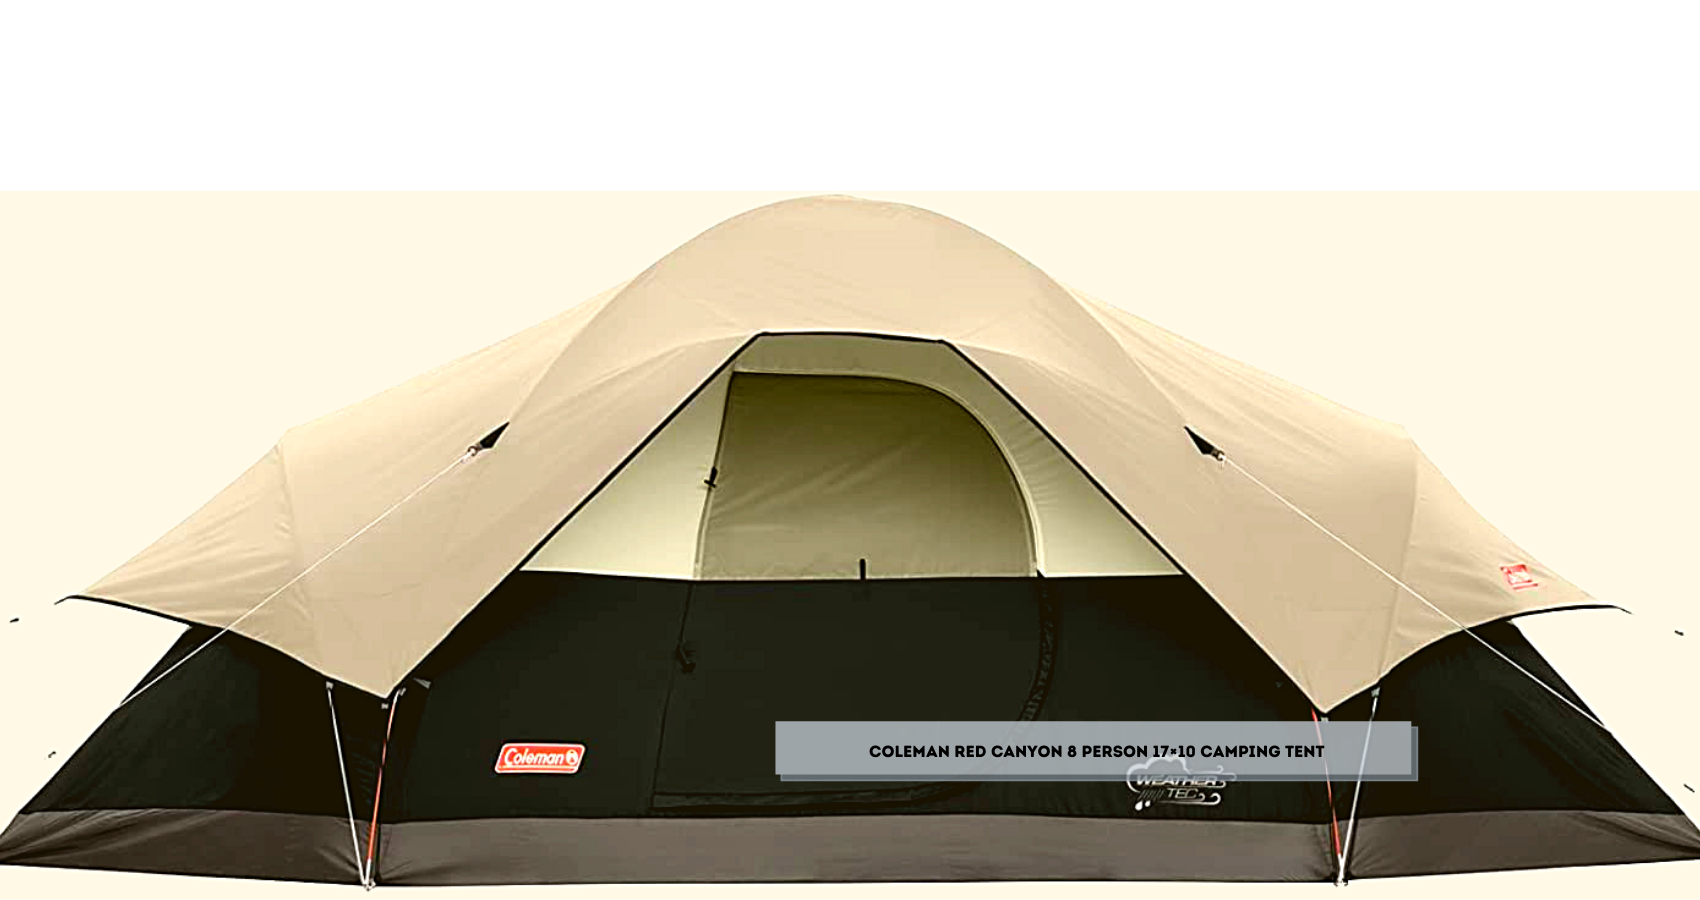 Coleman Red Canyon 8 Person 17×10 Camping Tent